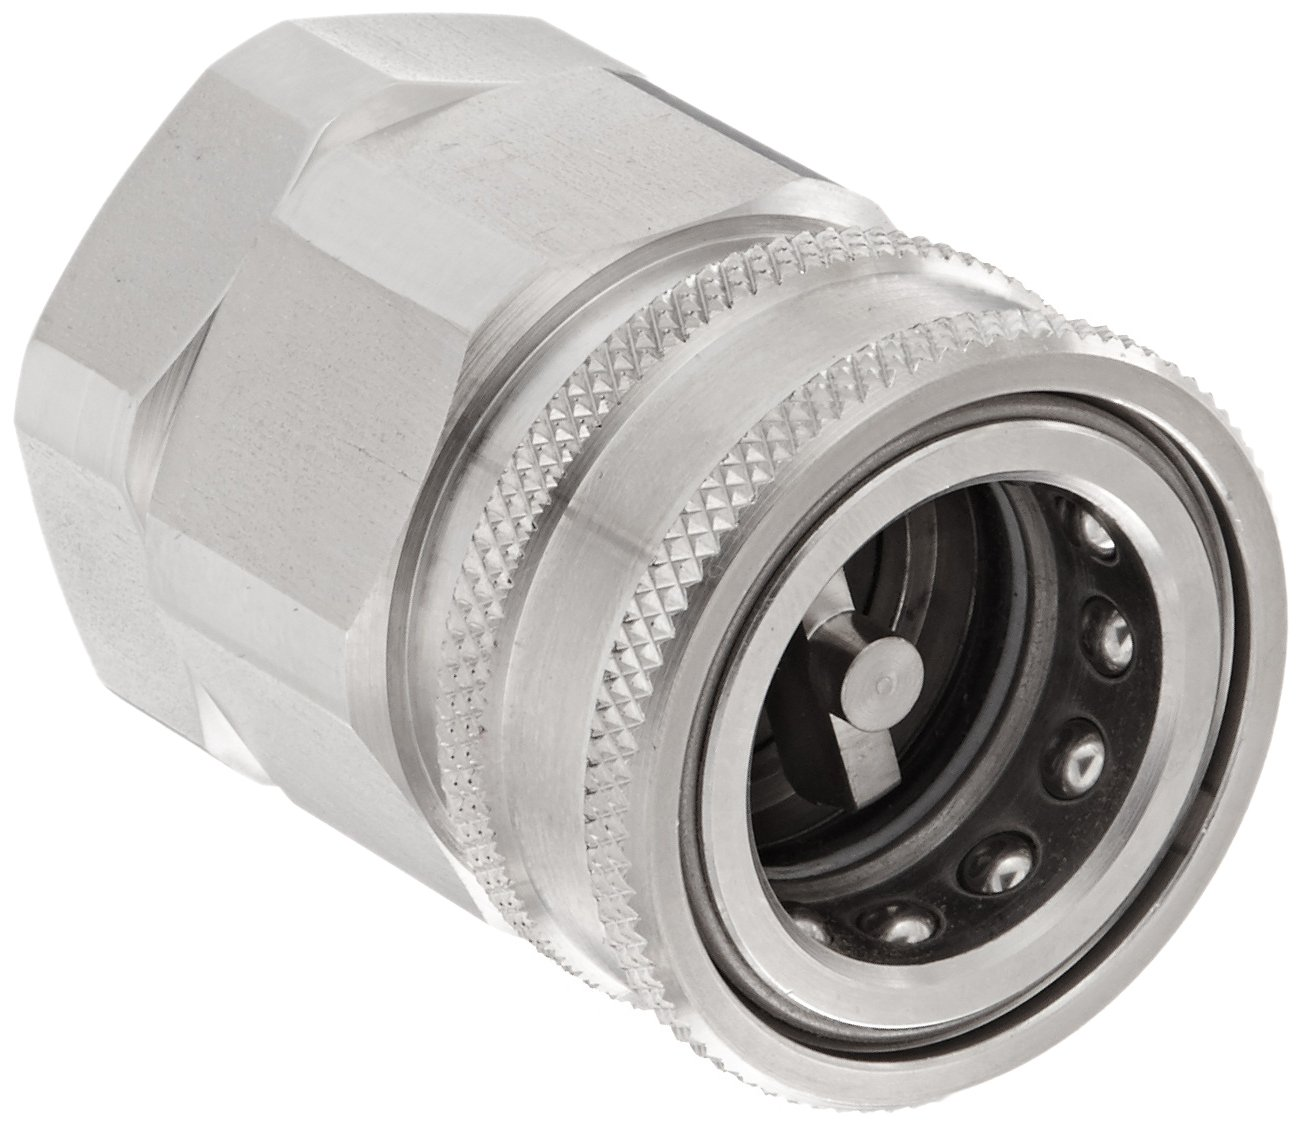 Snap-Tite SVHC16-16F Stainless Steel 316 H-Shape Quick-Disconnect Hose Coupling, Sleeve-Lock Socket, 1'' NPSF Female x 1'' Coupling Size